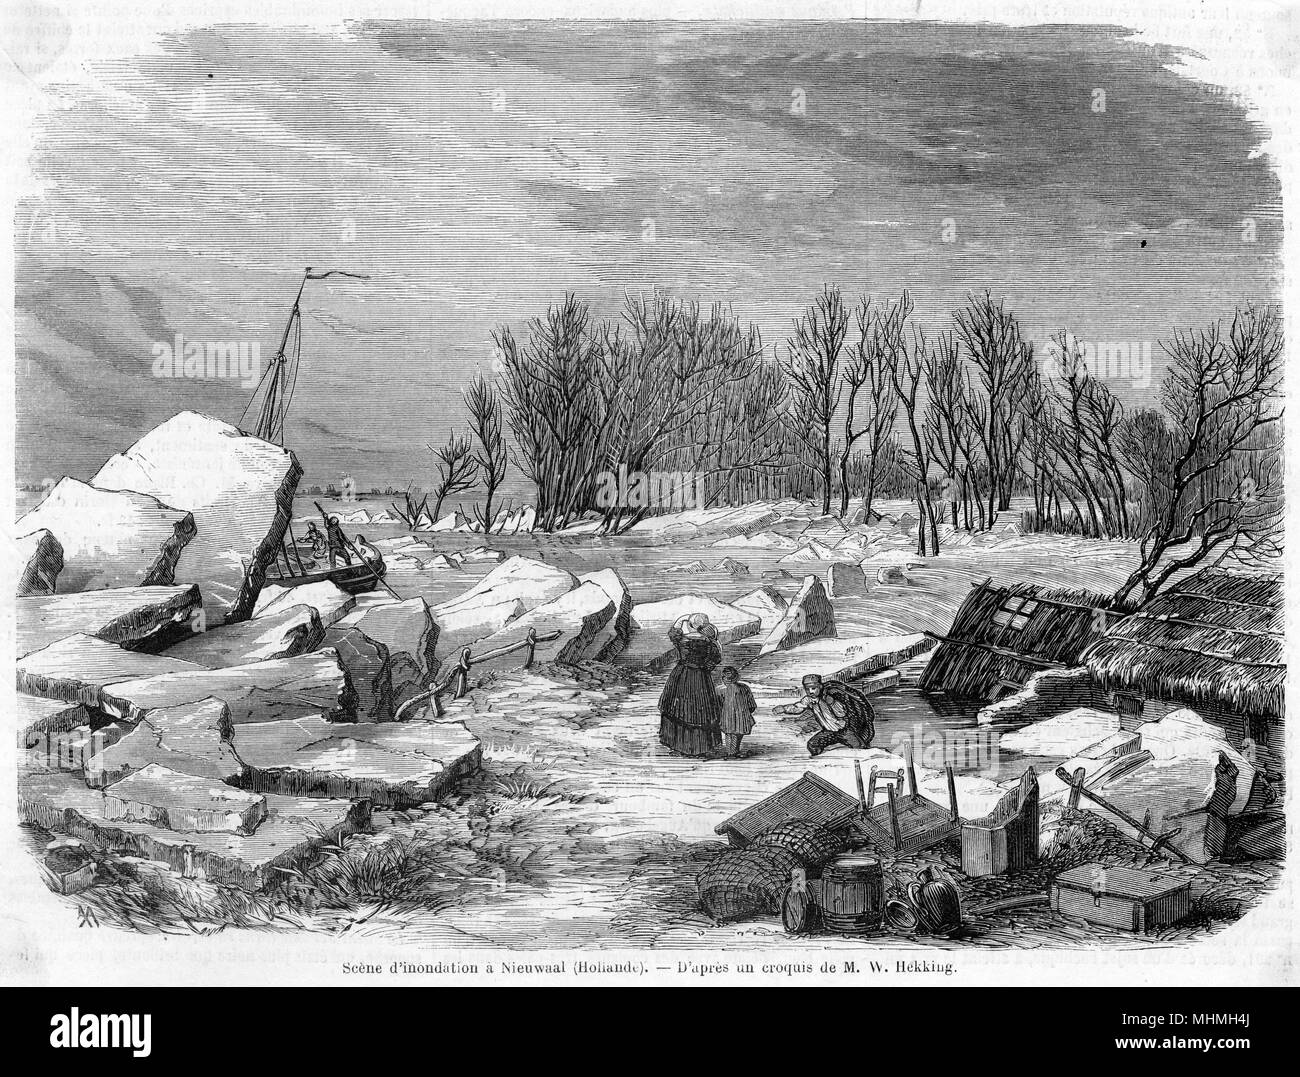 A scene of flooding at Nieuwaal in Holland - a few possessions have been rescued from flooded homes      Date: 1861 - Stock Image